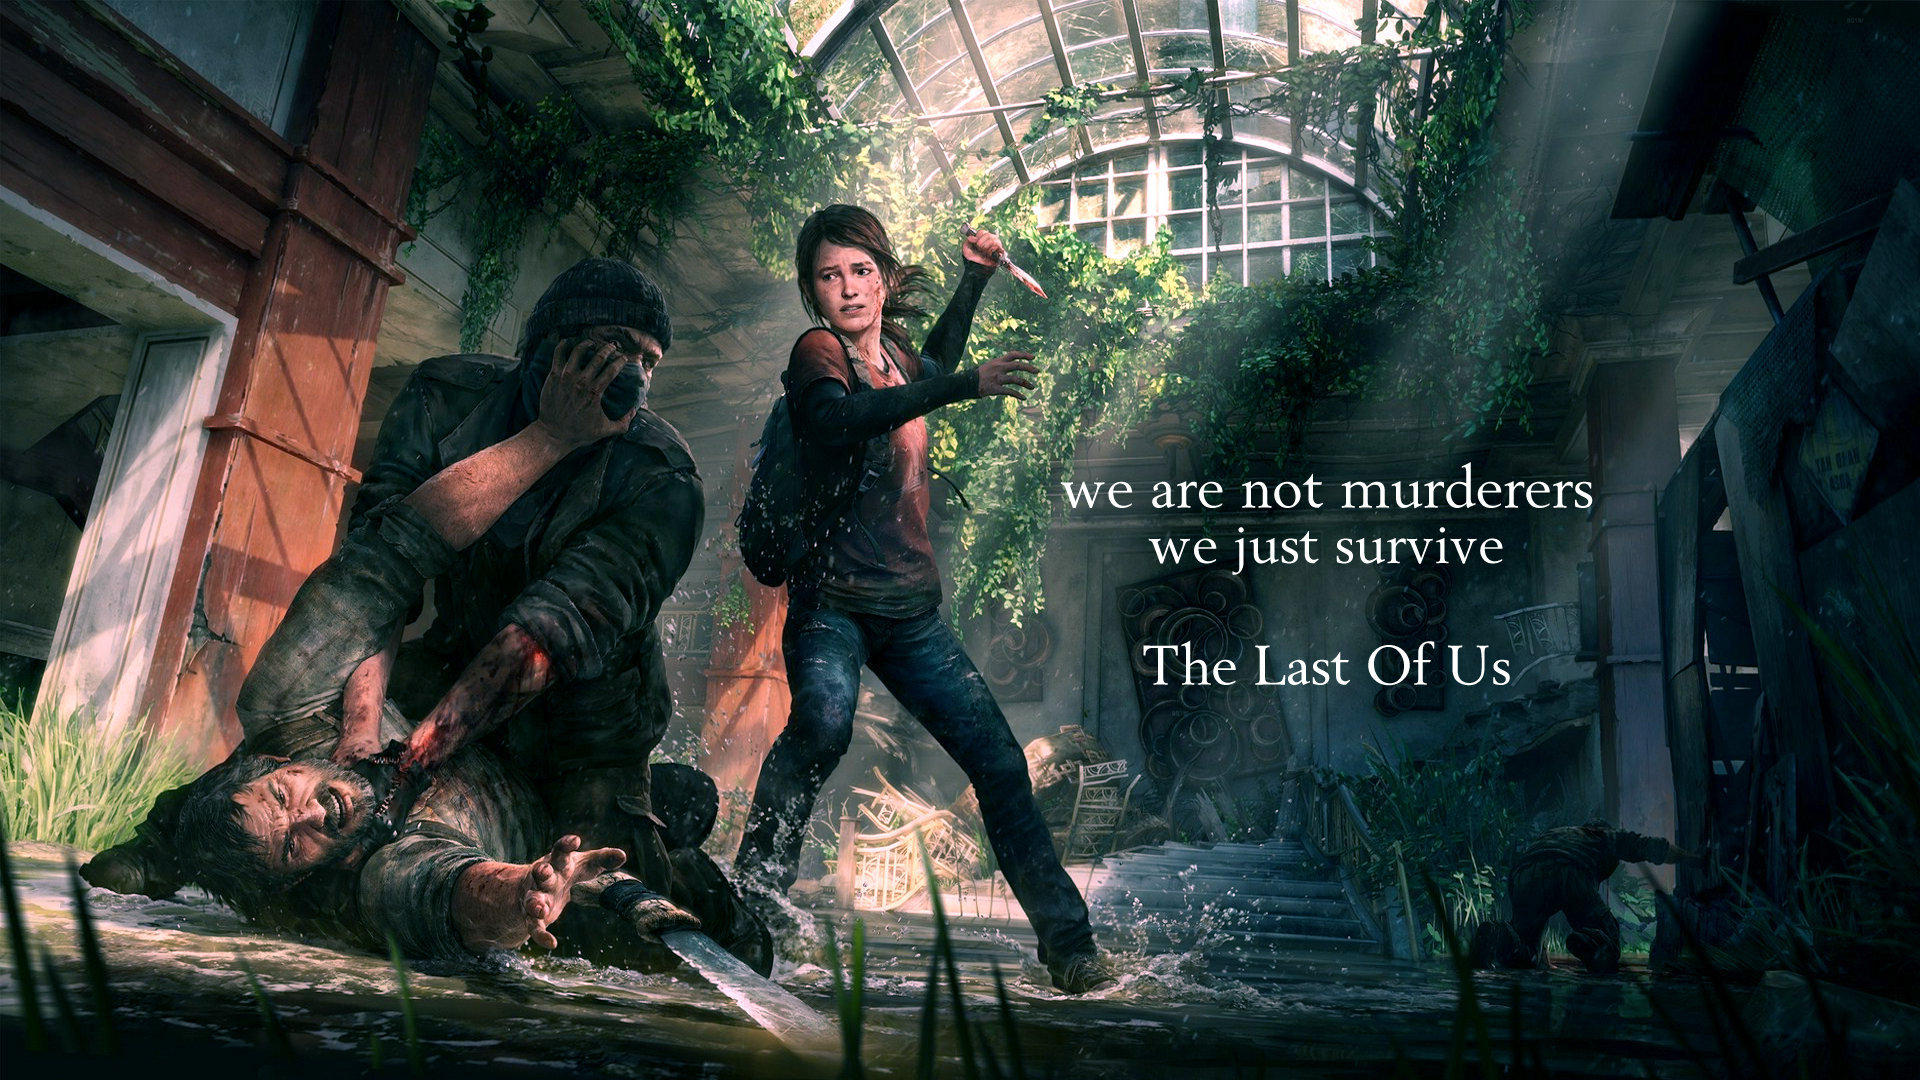 The Last Of Us Res: 1920x1080 HD / Size:553kb. Views: 61876